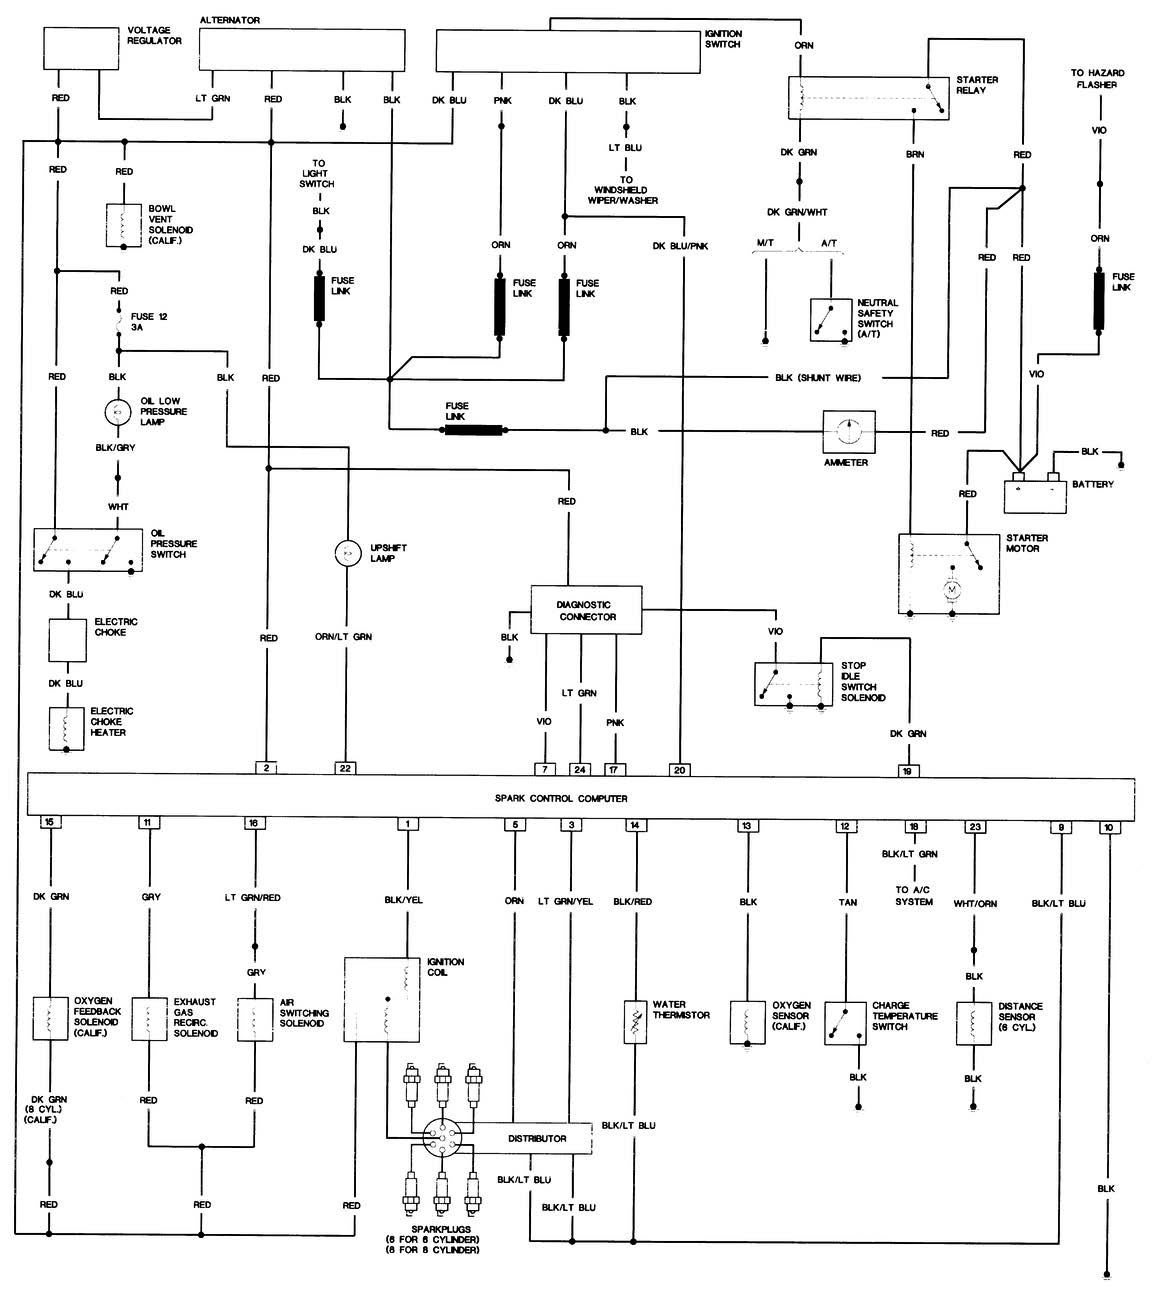 msd 6420 wiring diagram msd image wiring diagram msd ignition 6420 wiring diagram solidfonts on msd 6420 wiring diagram